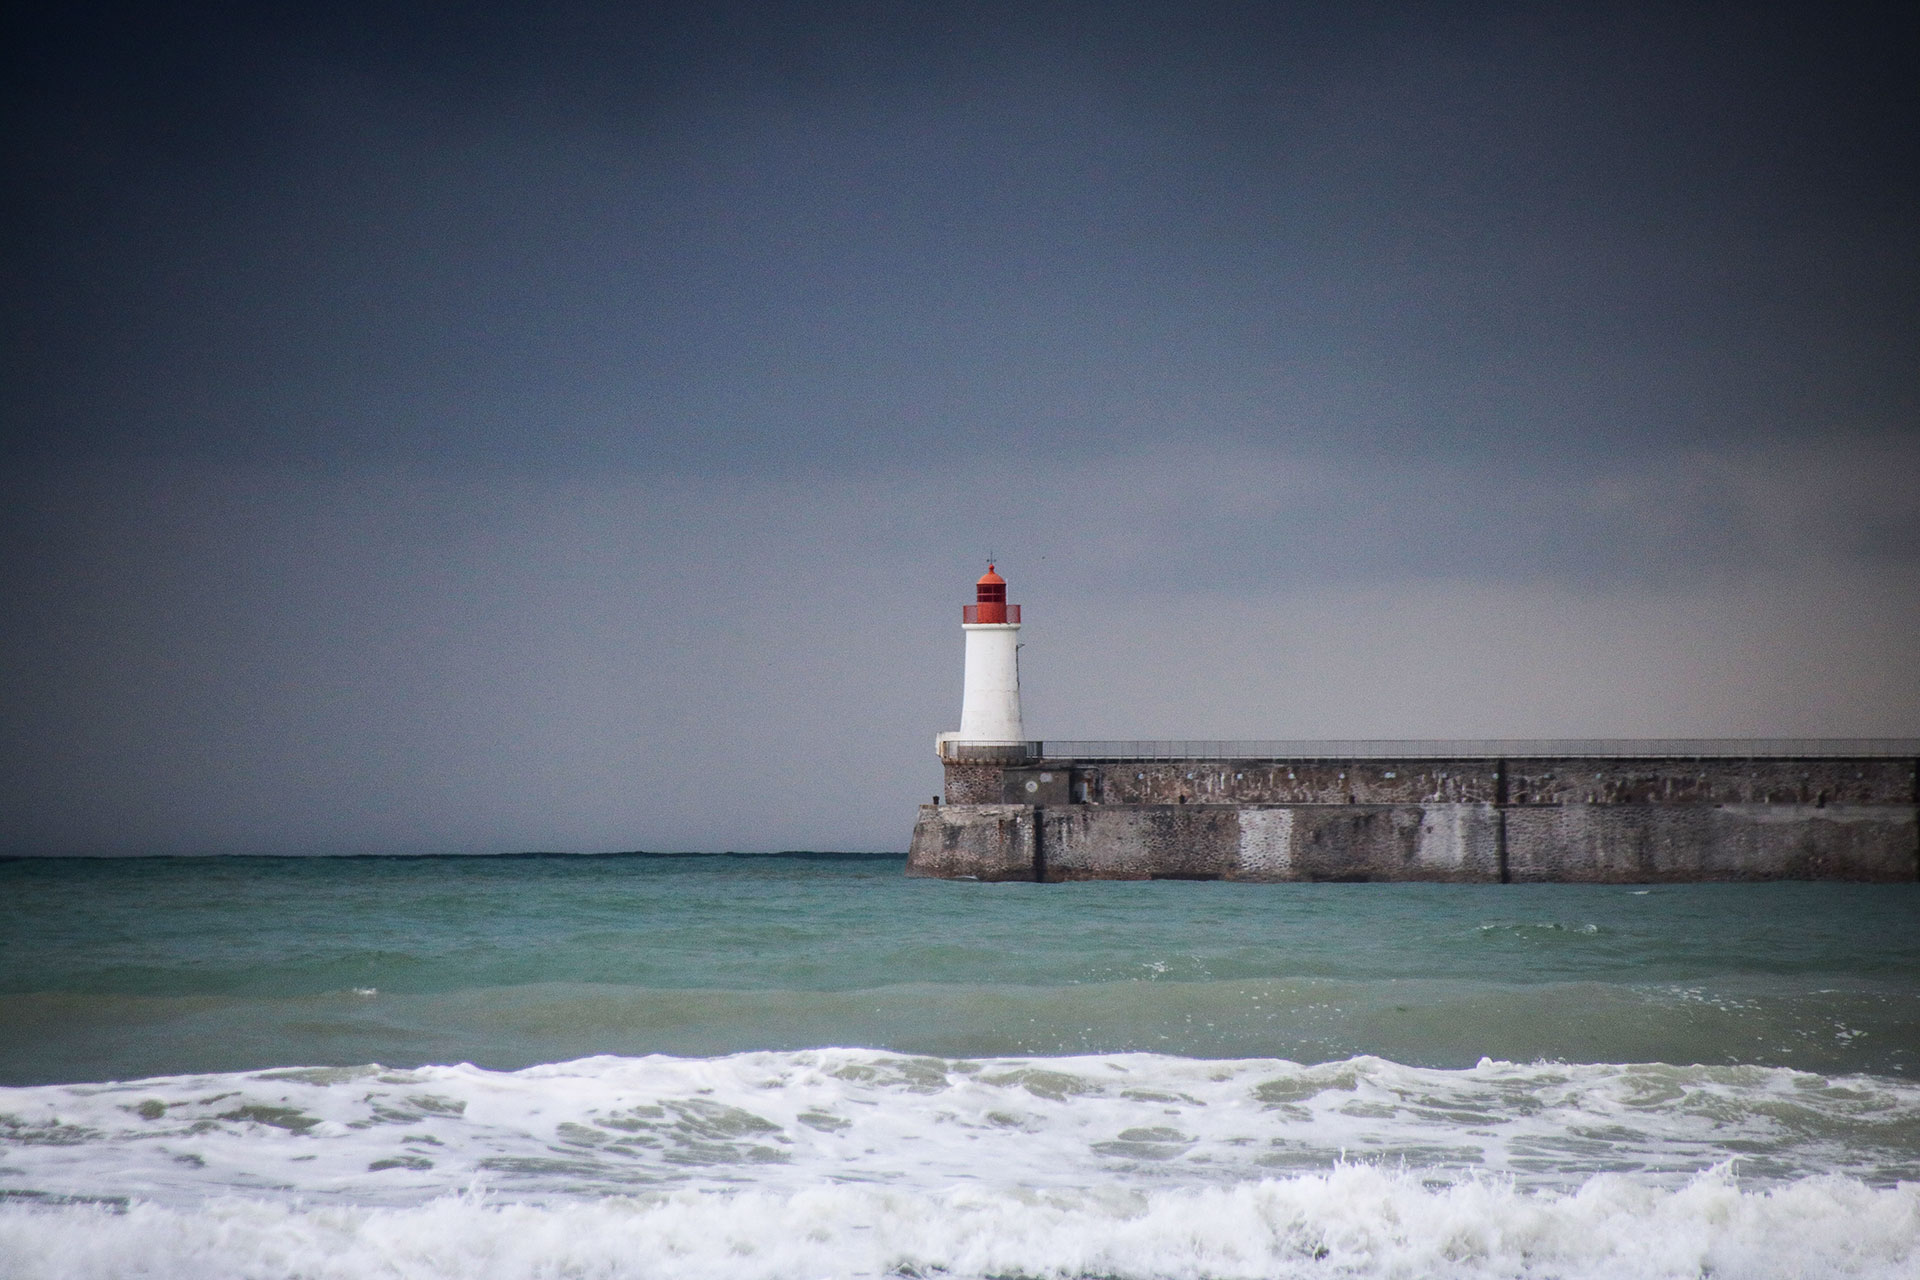 The Lighthouse at Les Sables-d'Olonne